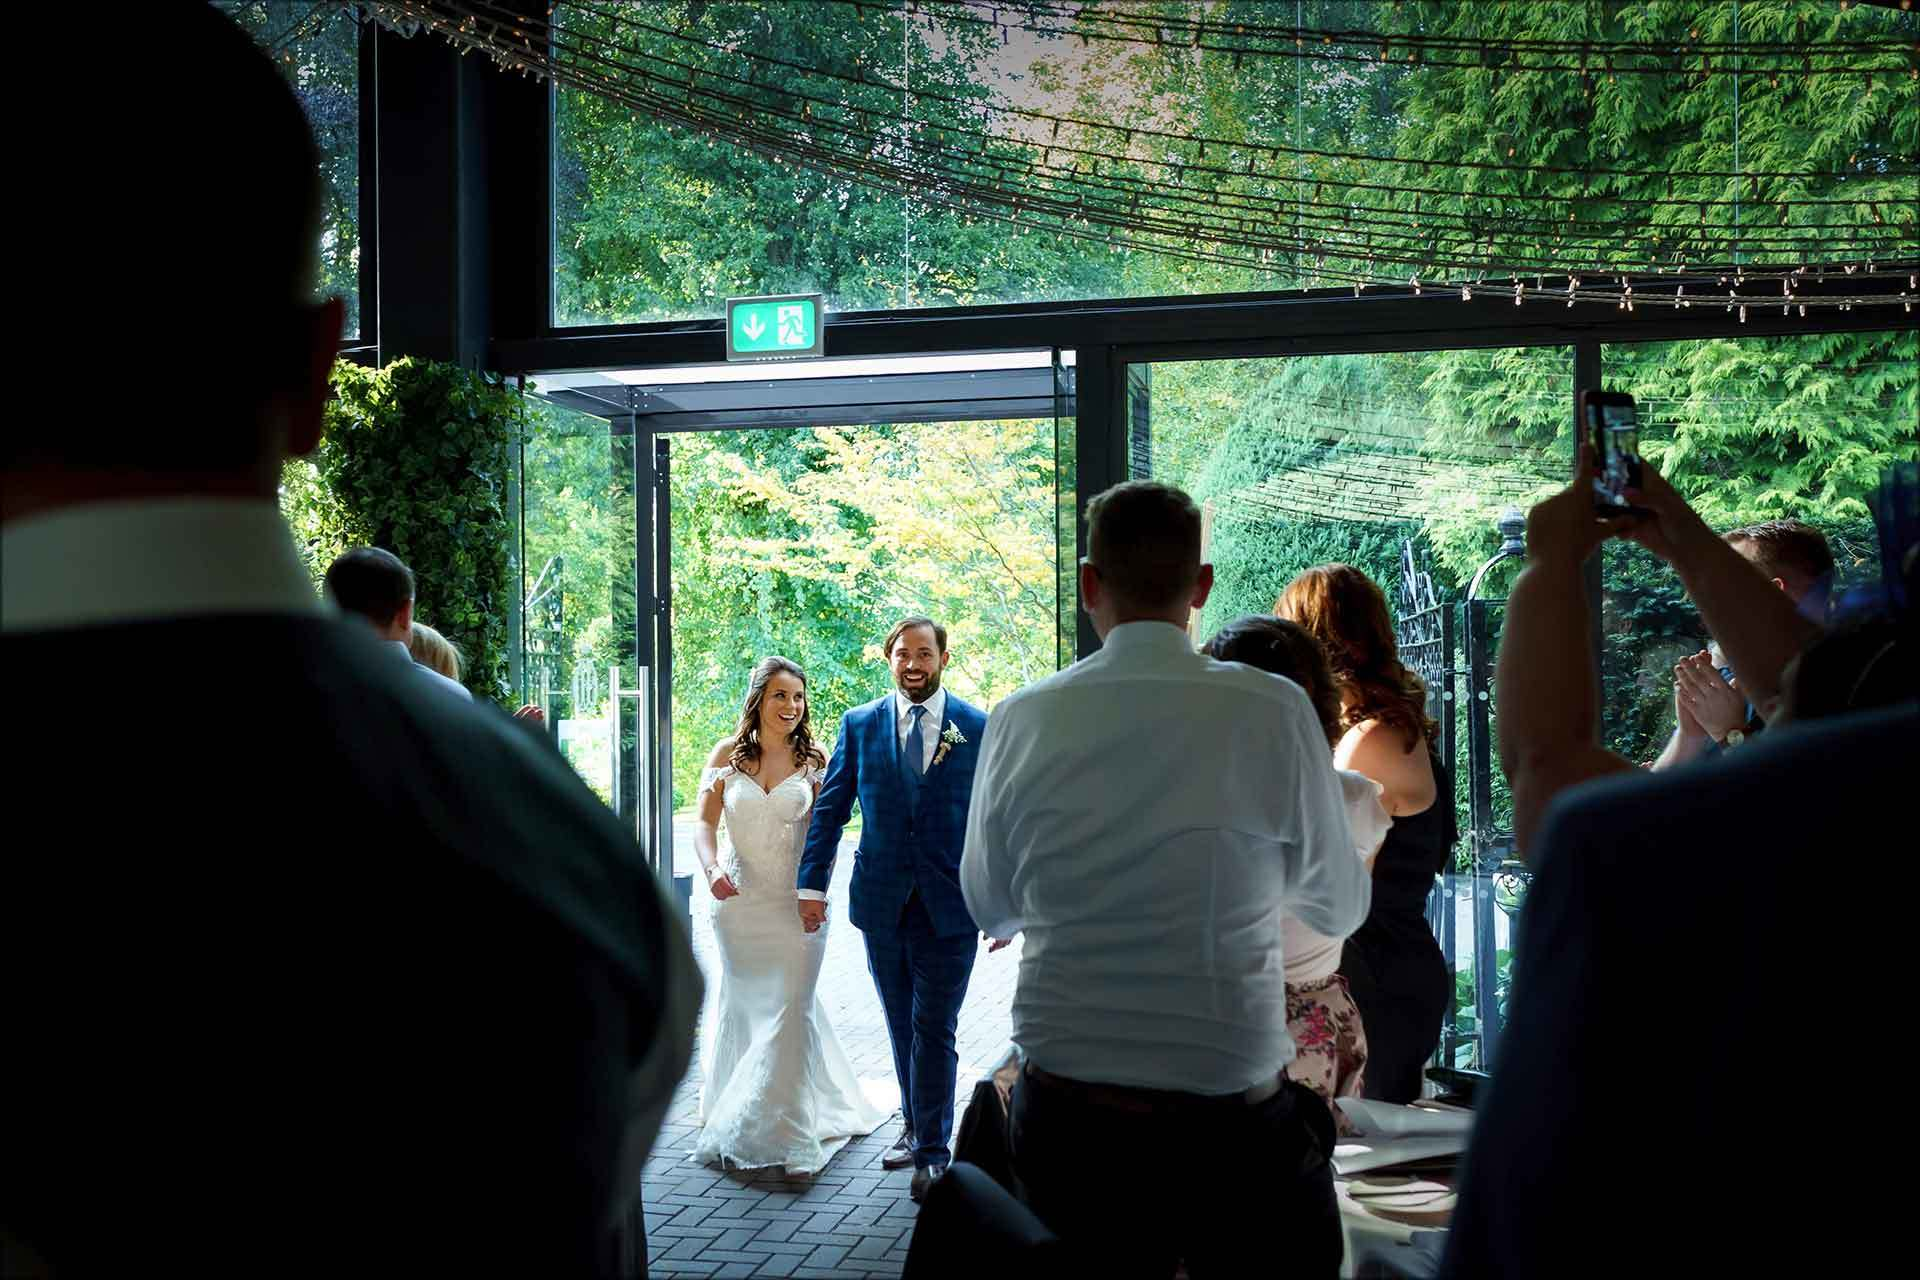 Bride and groom enter the room for the wedding breakfast